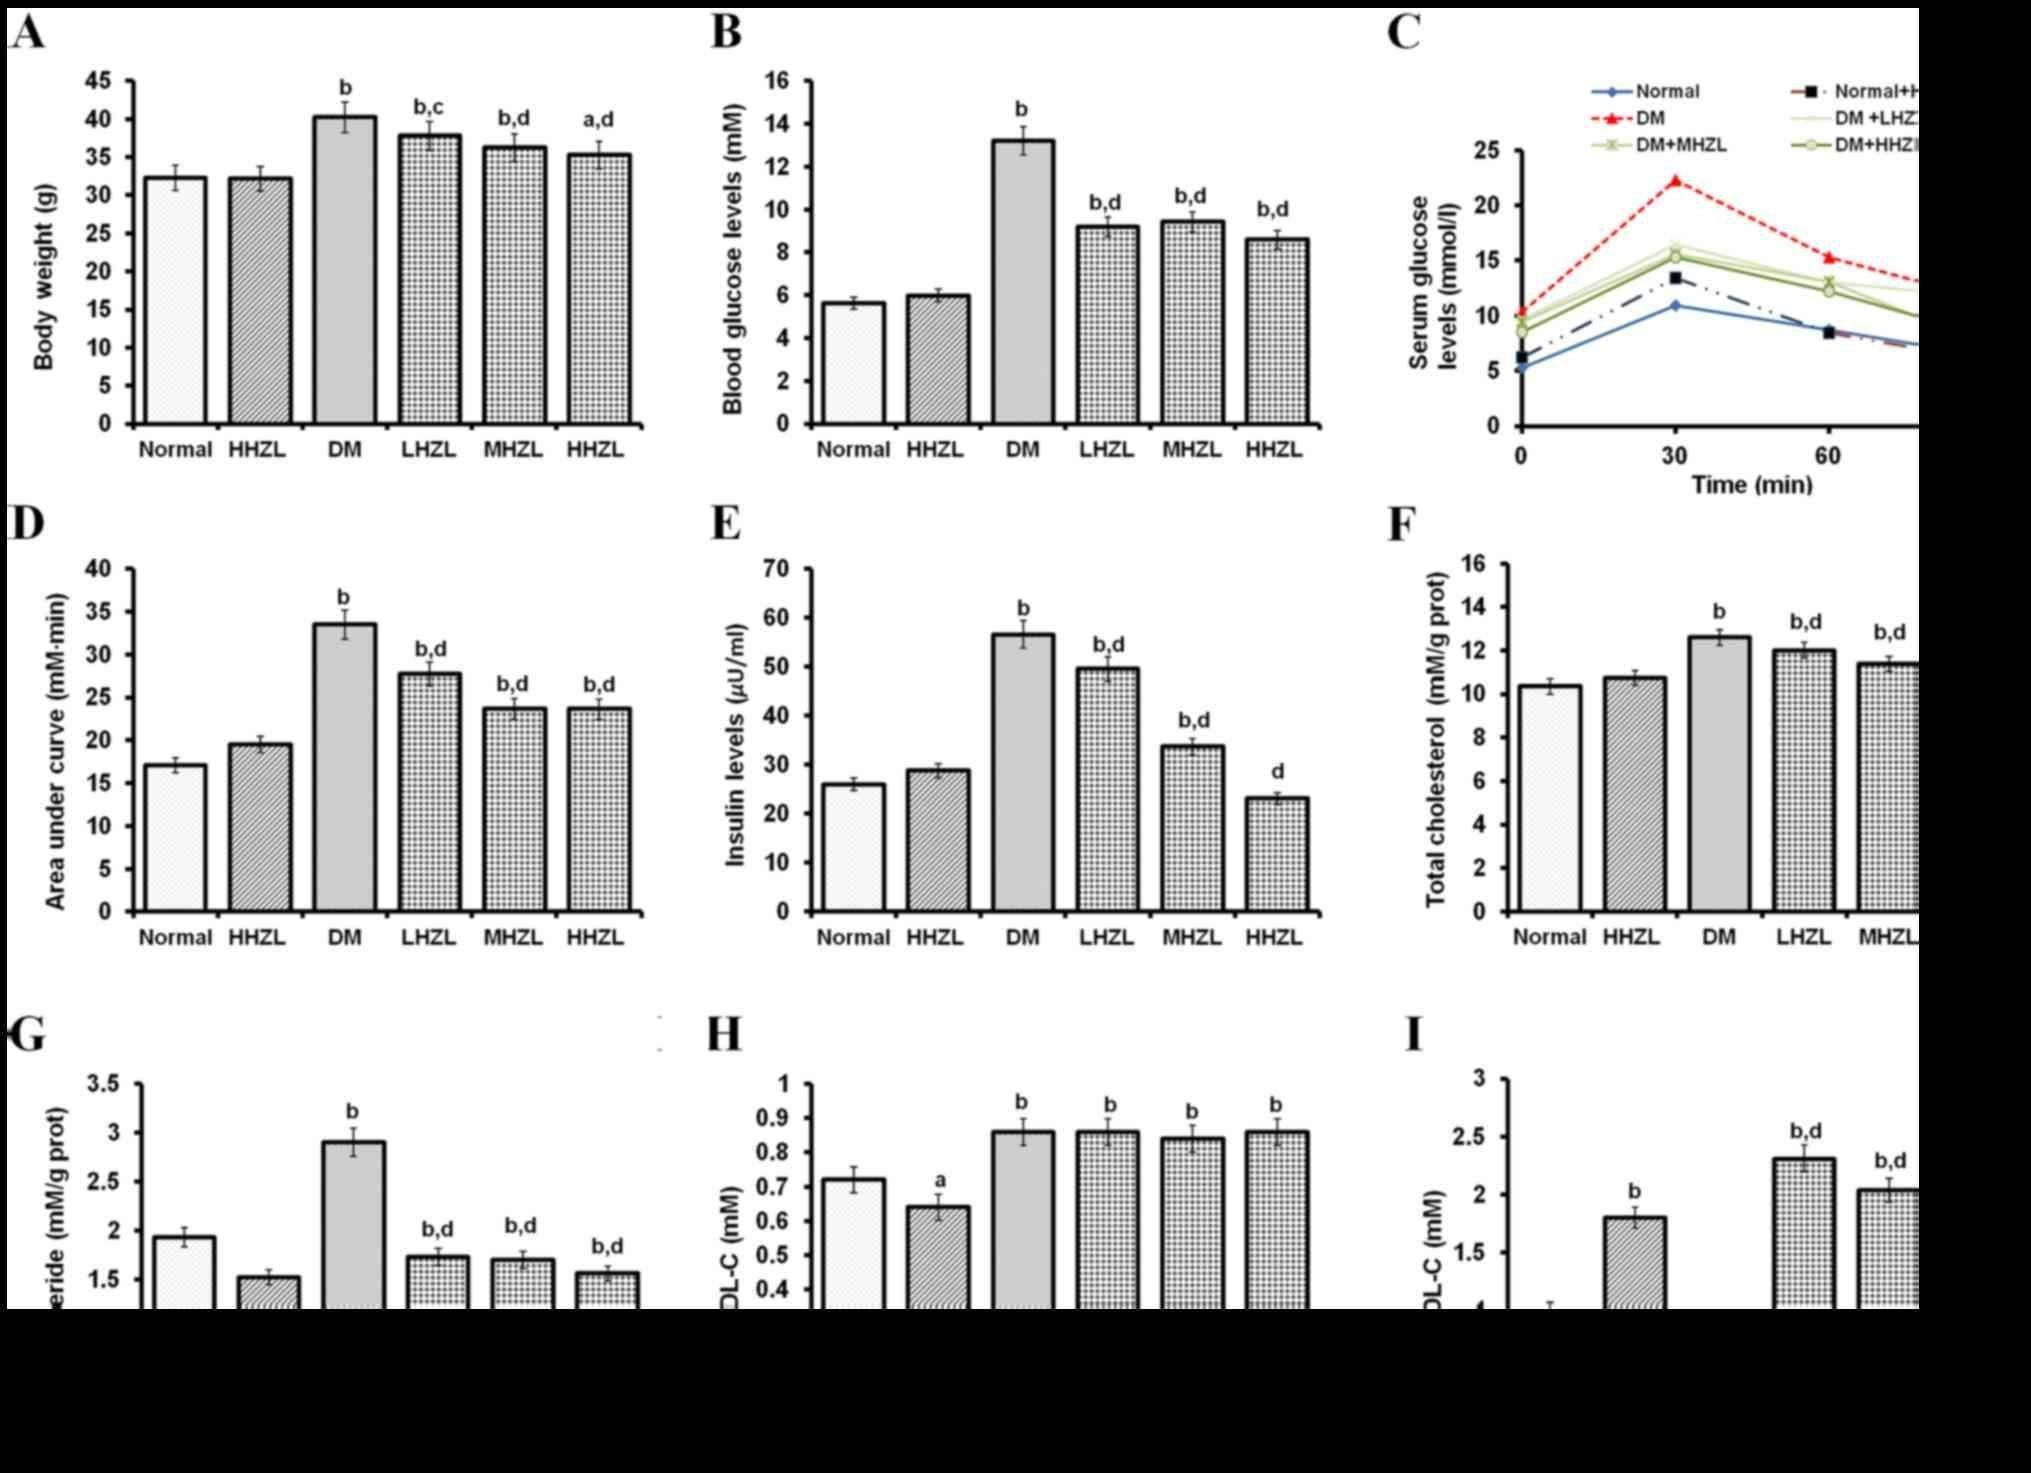 Anti-hypoglycemic And Hepatocyte-protective Effects Of Hyperoside From Zanthoxylum Bungeanum Leaves In Mice With High-carbohydrate/high-fat Diet And Alloxan-induced Diabetes